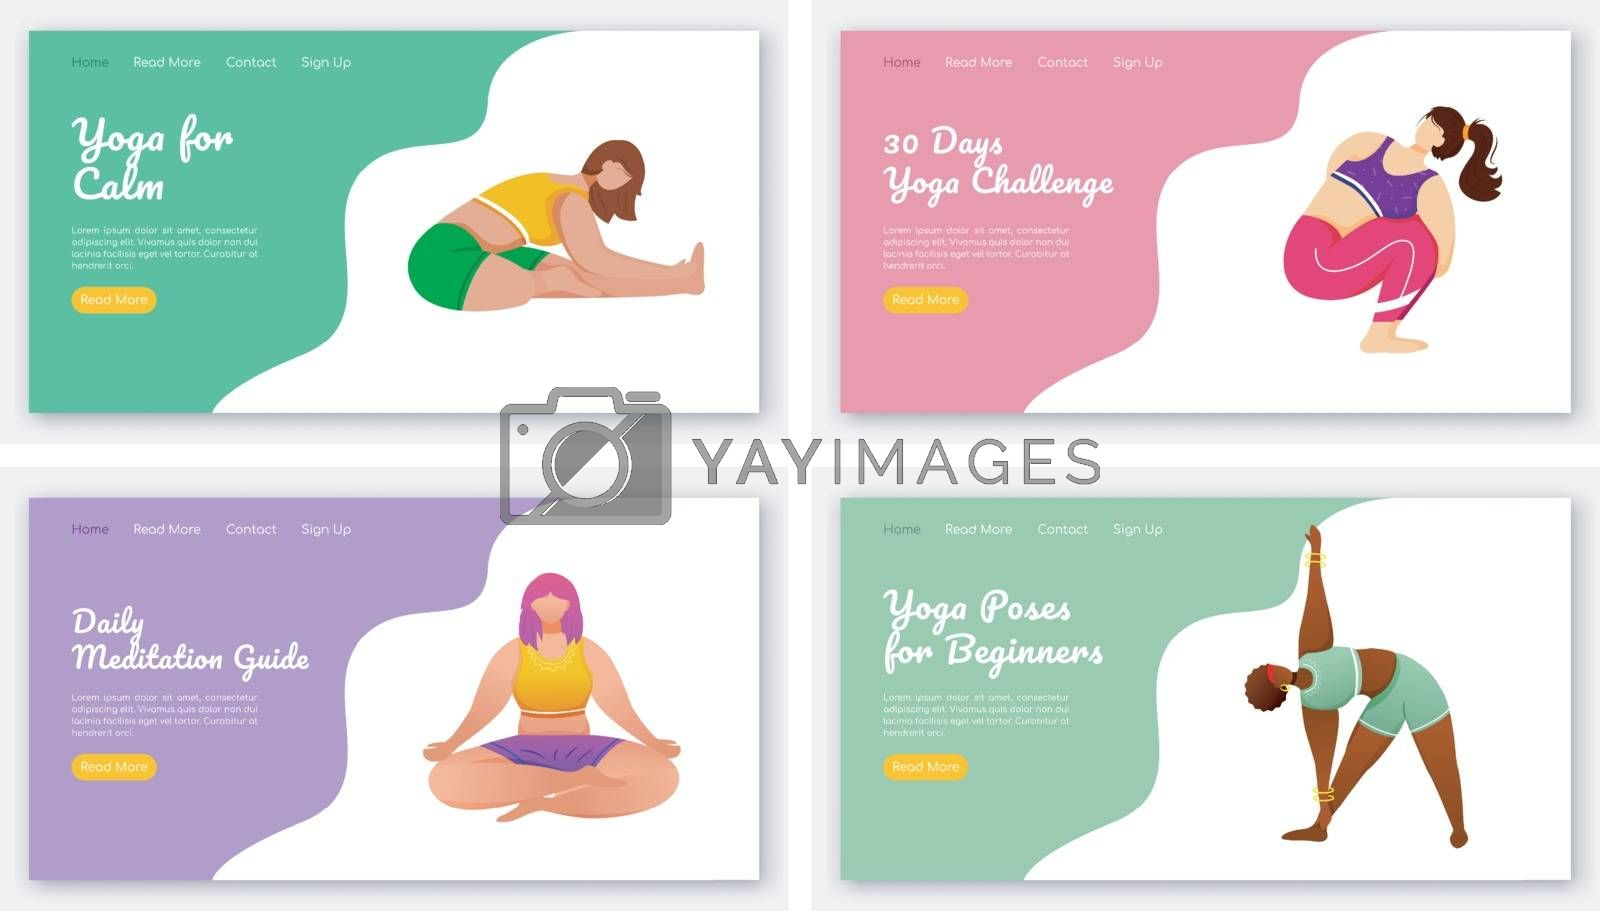 Yoga and meditation poses landing page vector template set. Stretch exercises. Bodypositive website interface idea with flat illustrations. Homepage layout, web banner, webpage cartoon concept